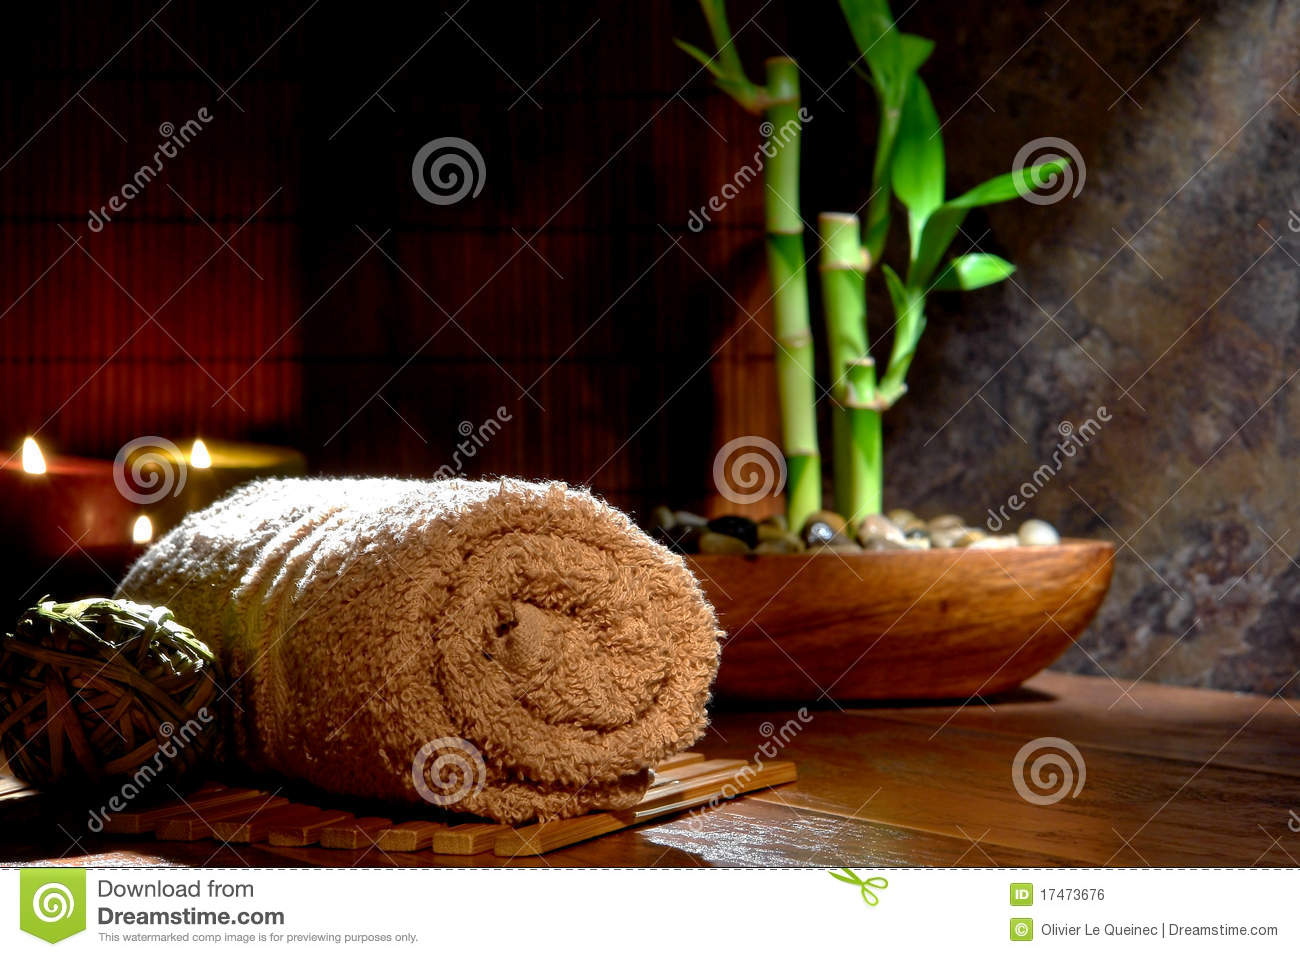 Towel and Bamboo in a Meditation and Wellness Spa